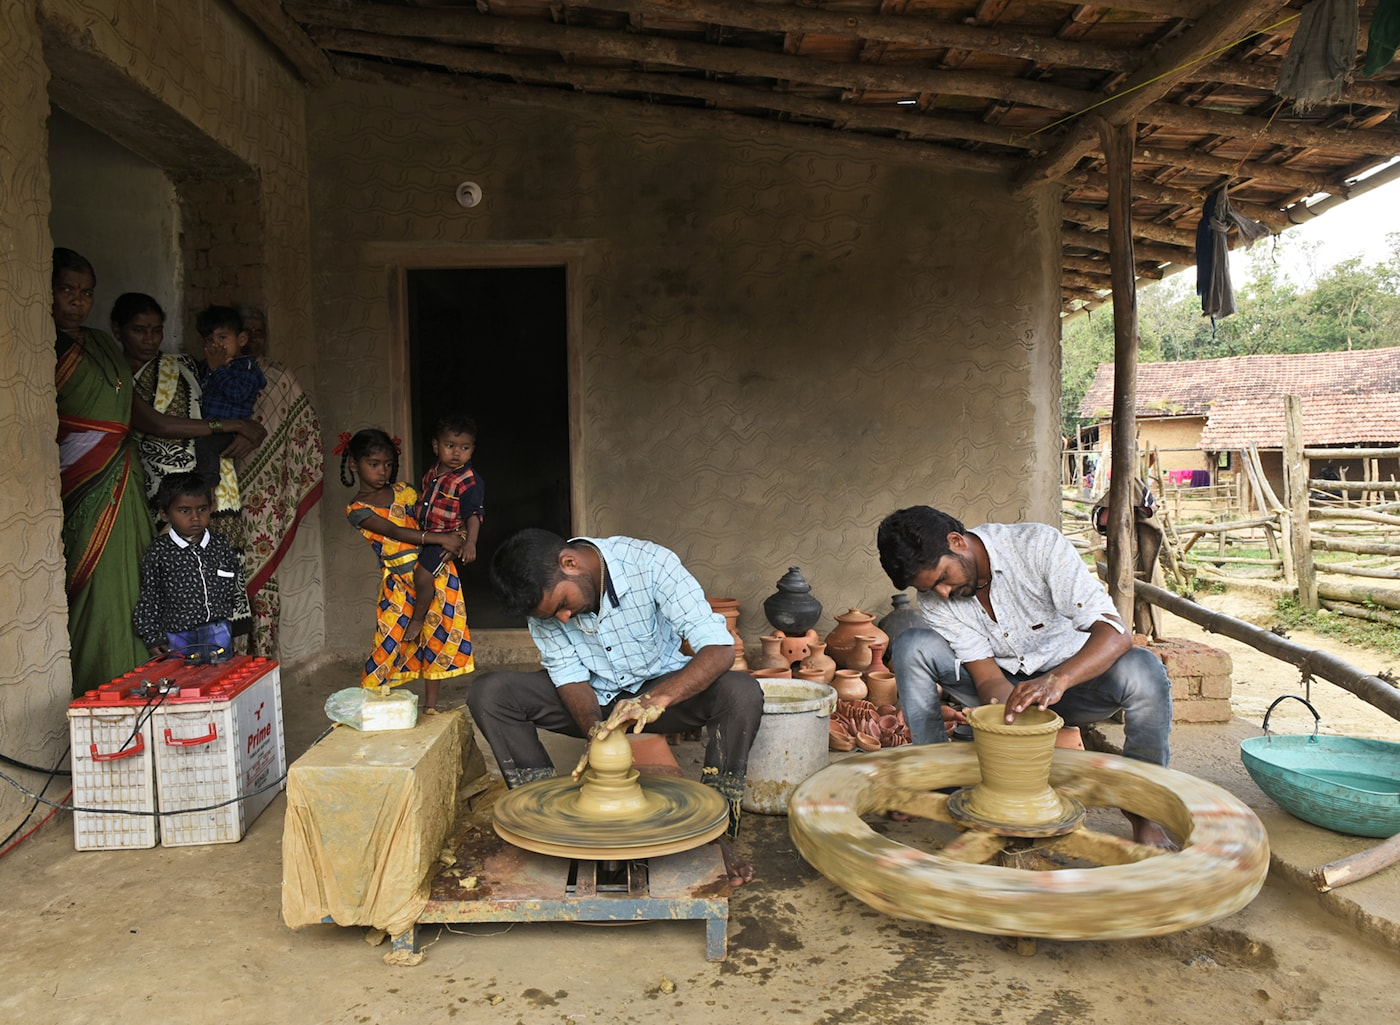 Link to 'Fighting poverty and climate change' - image of two Indian potters working on their potting wheels.